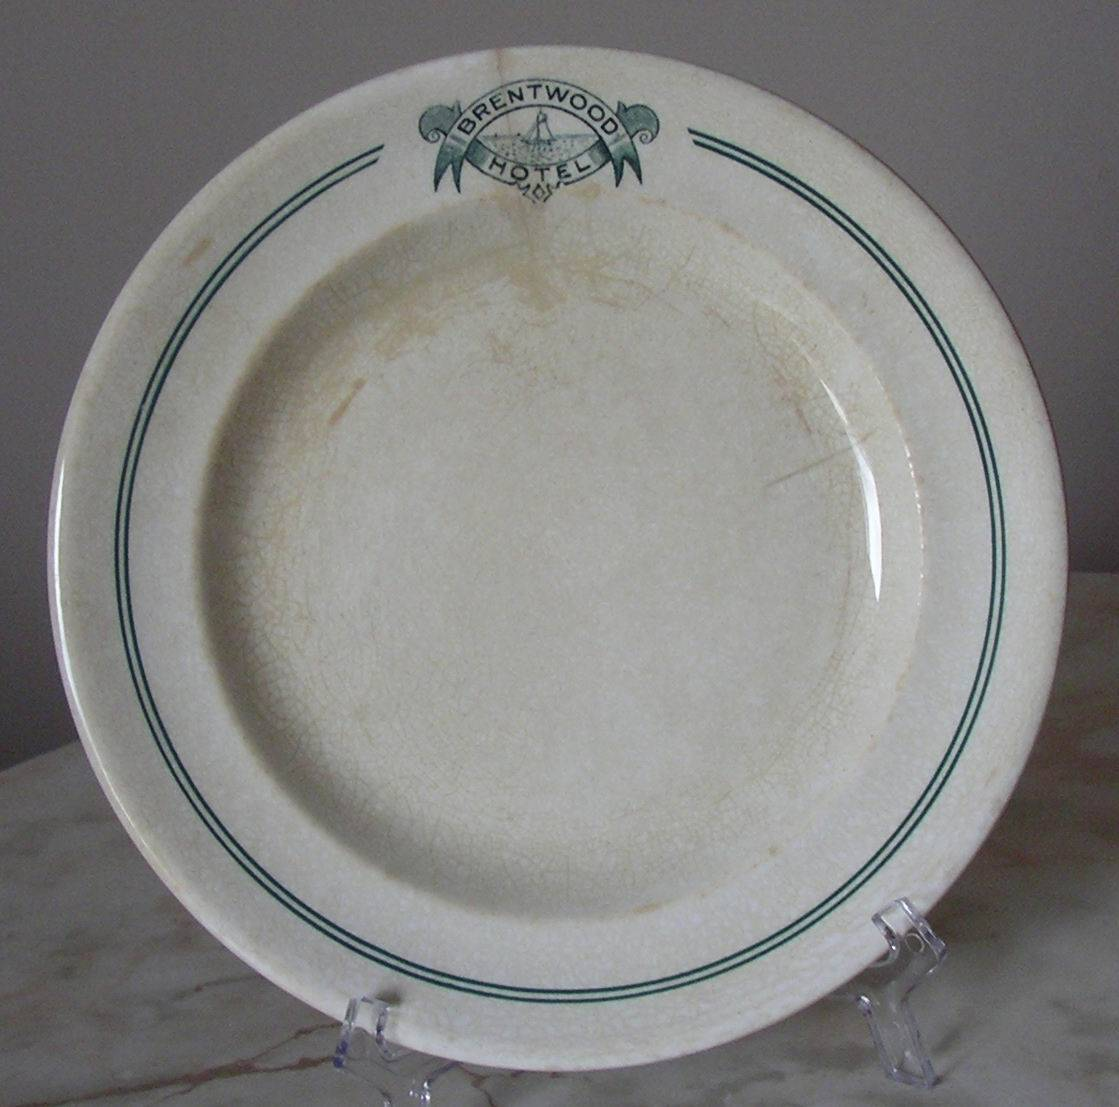 Brentwood Hotel Plate